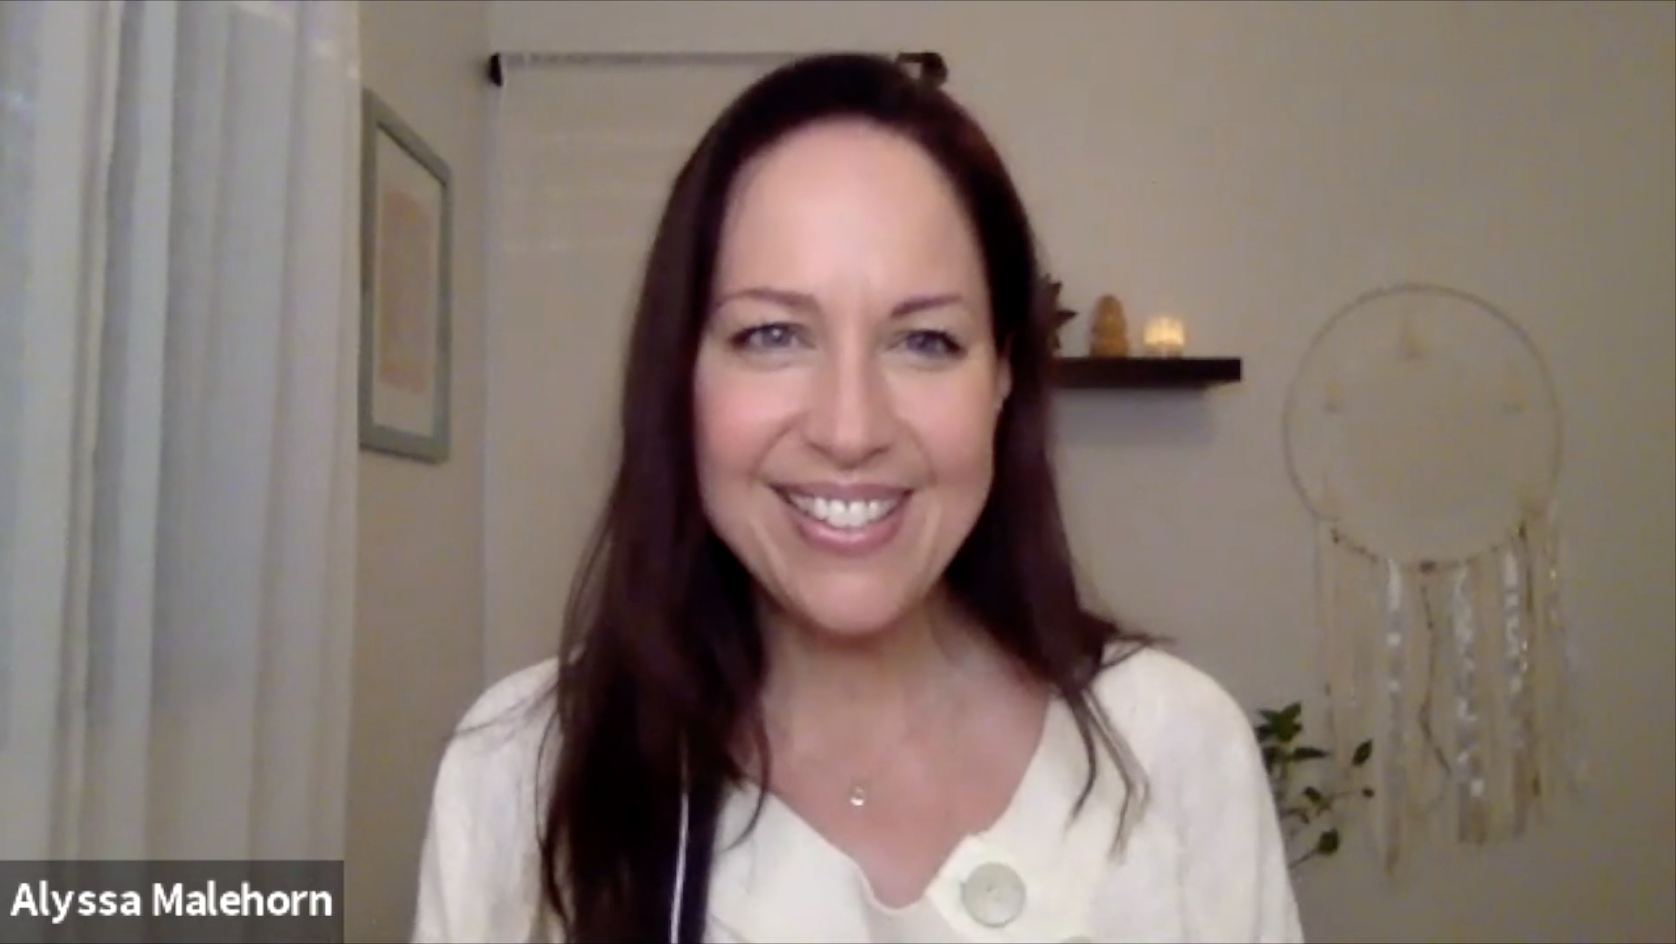 Video with Alyssa and FLFE Founders Jeffrey and Clayten [May 2019] - We talk about 5G, EMFs, the LOVE level of consciousness and so much more. Join our FREE Raw Spirituality Network to see the full video!